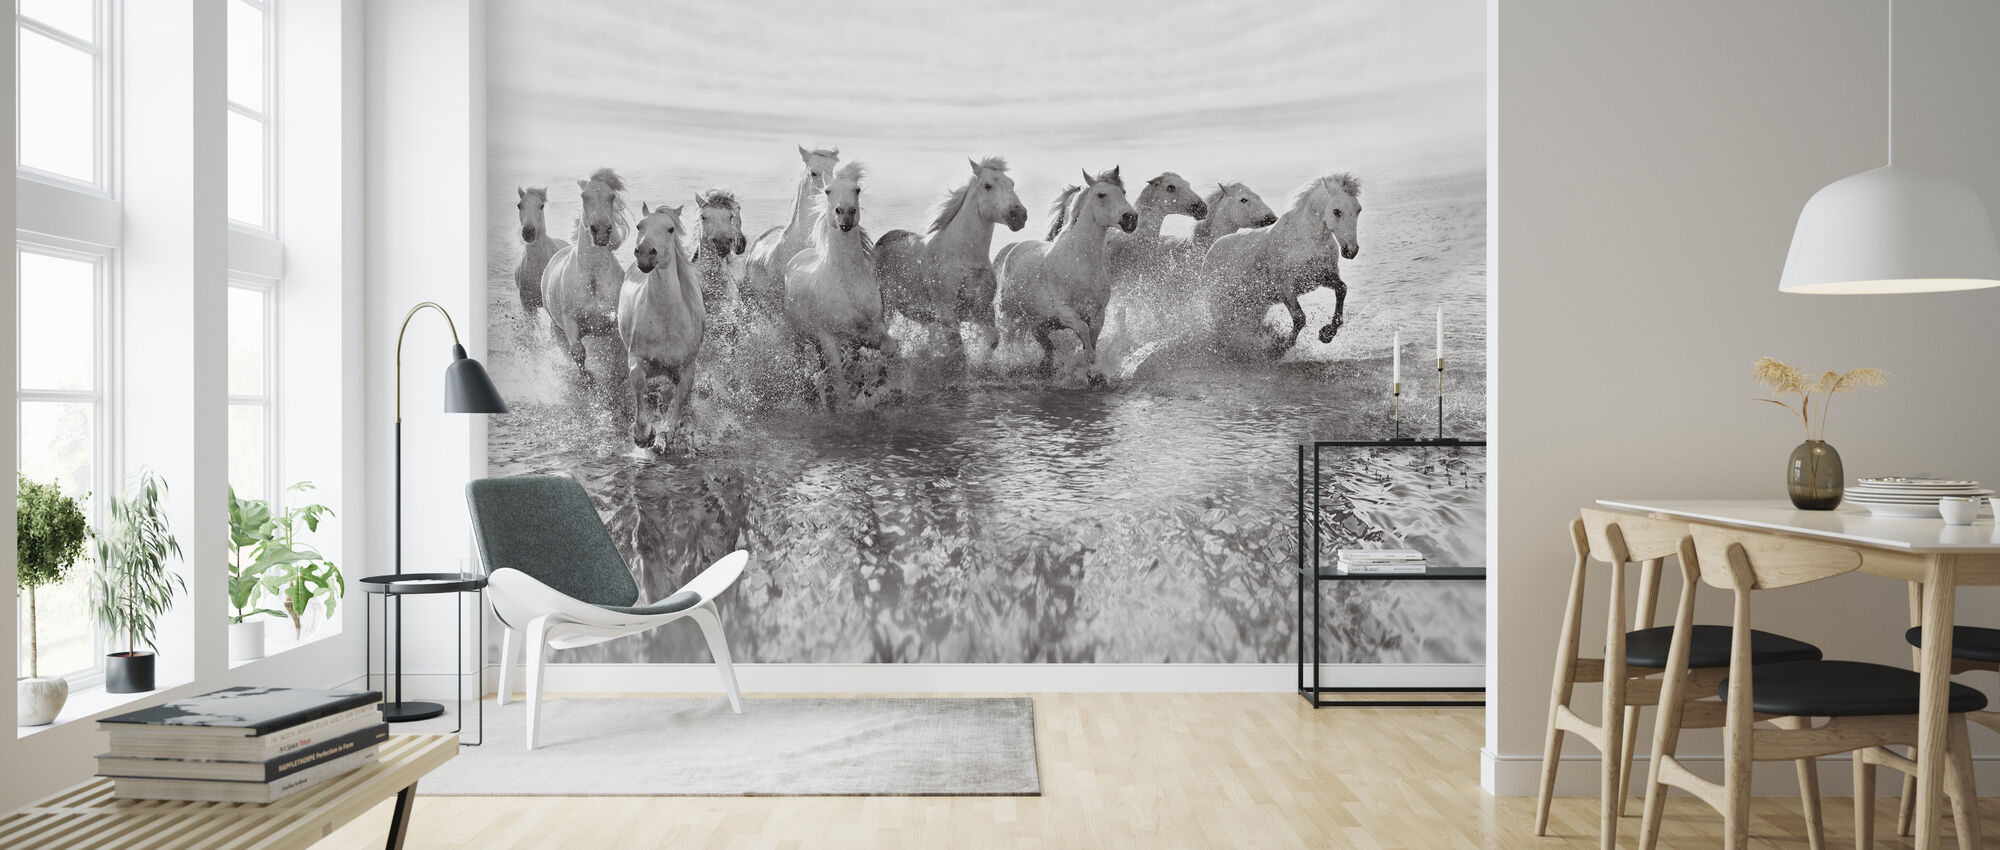 Illusion of Power (13 horse power though) - Wallpaper - Living Room